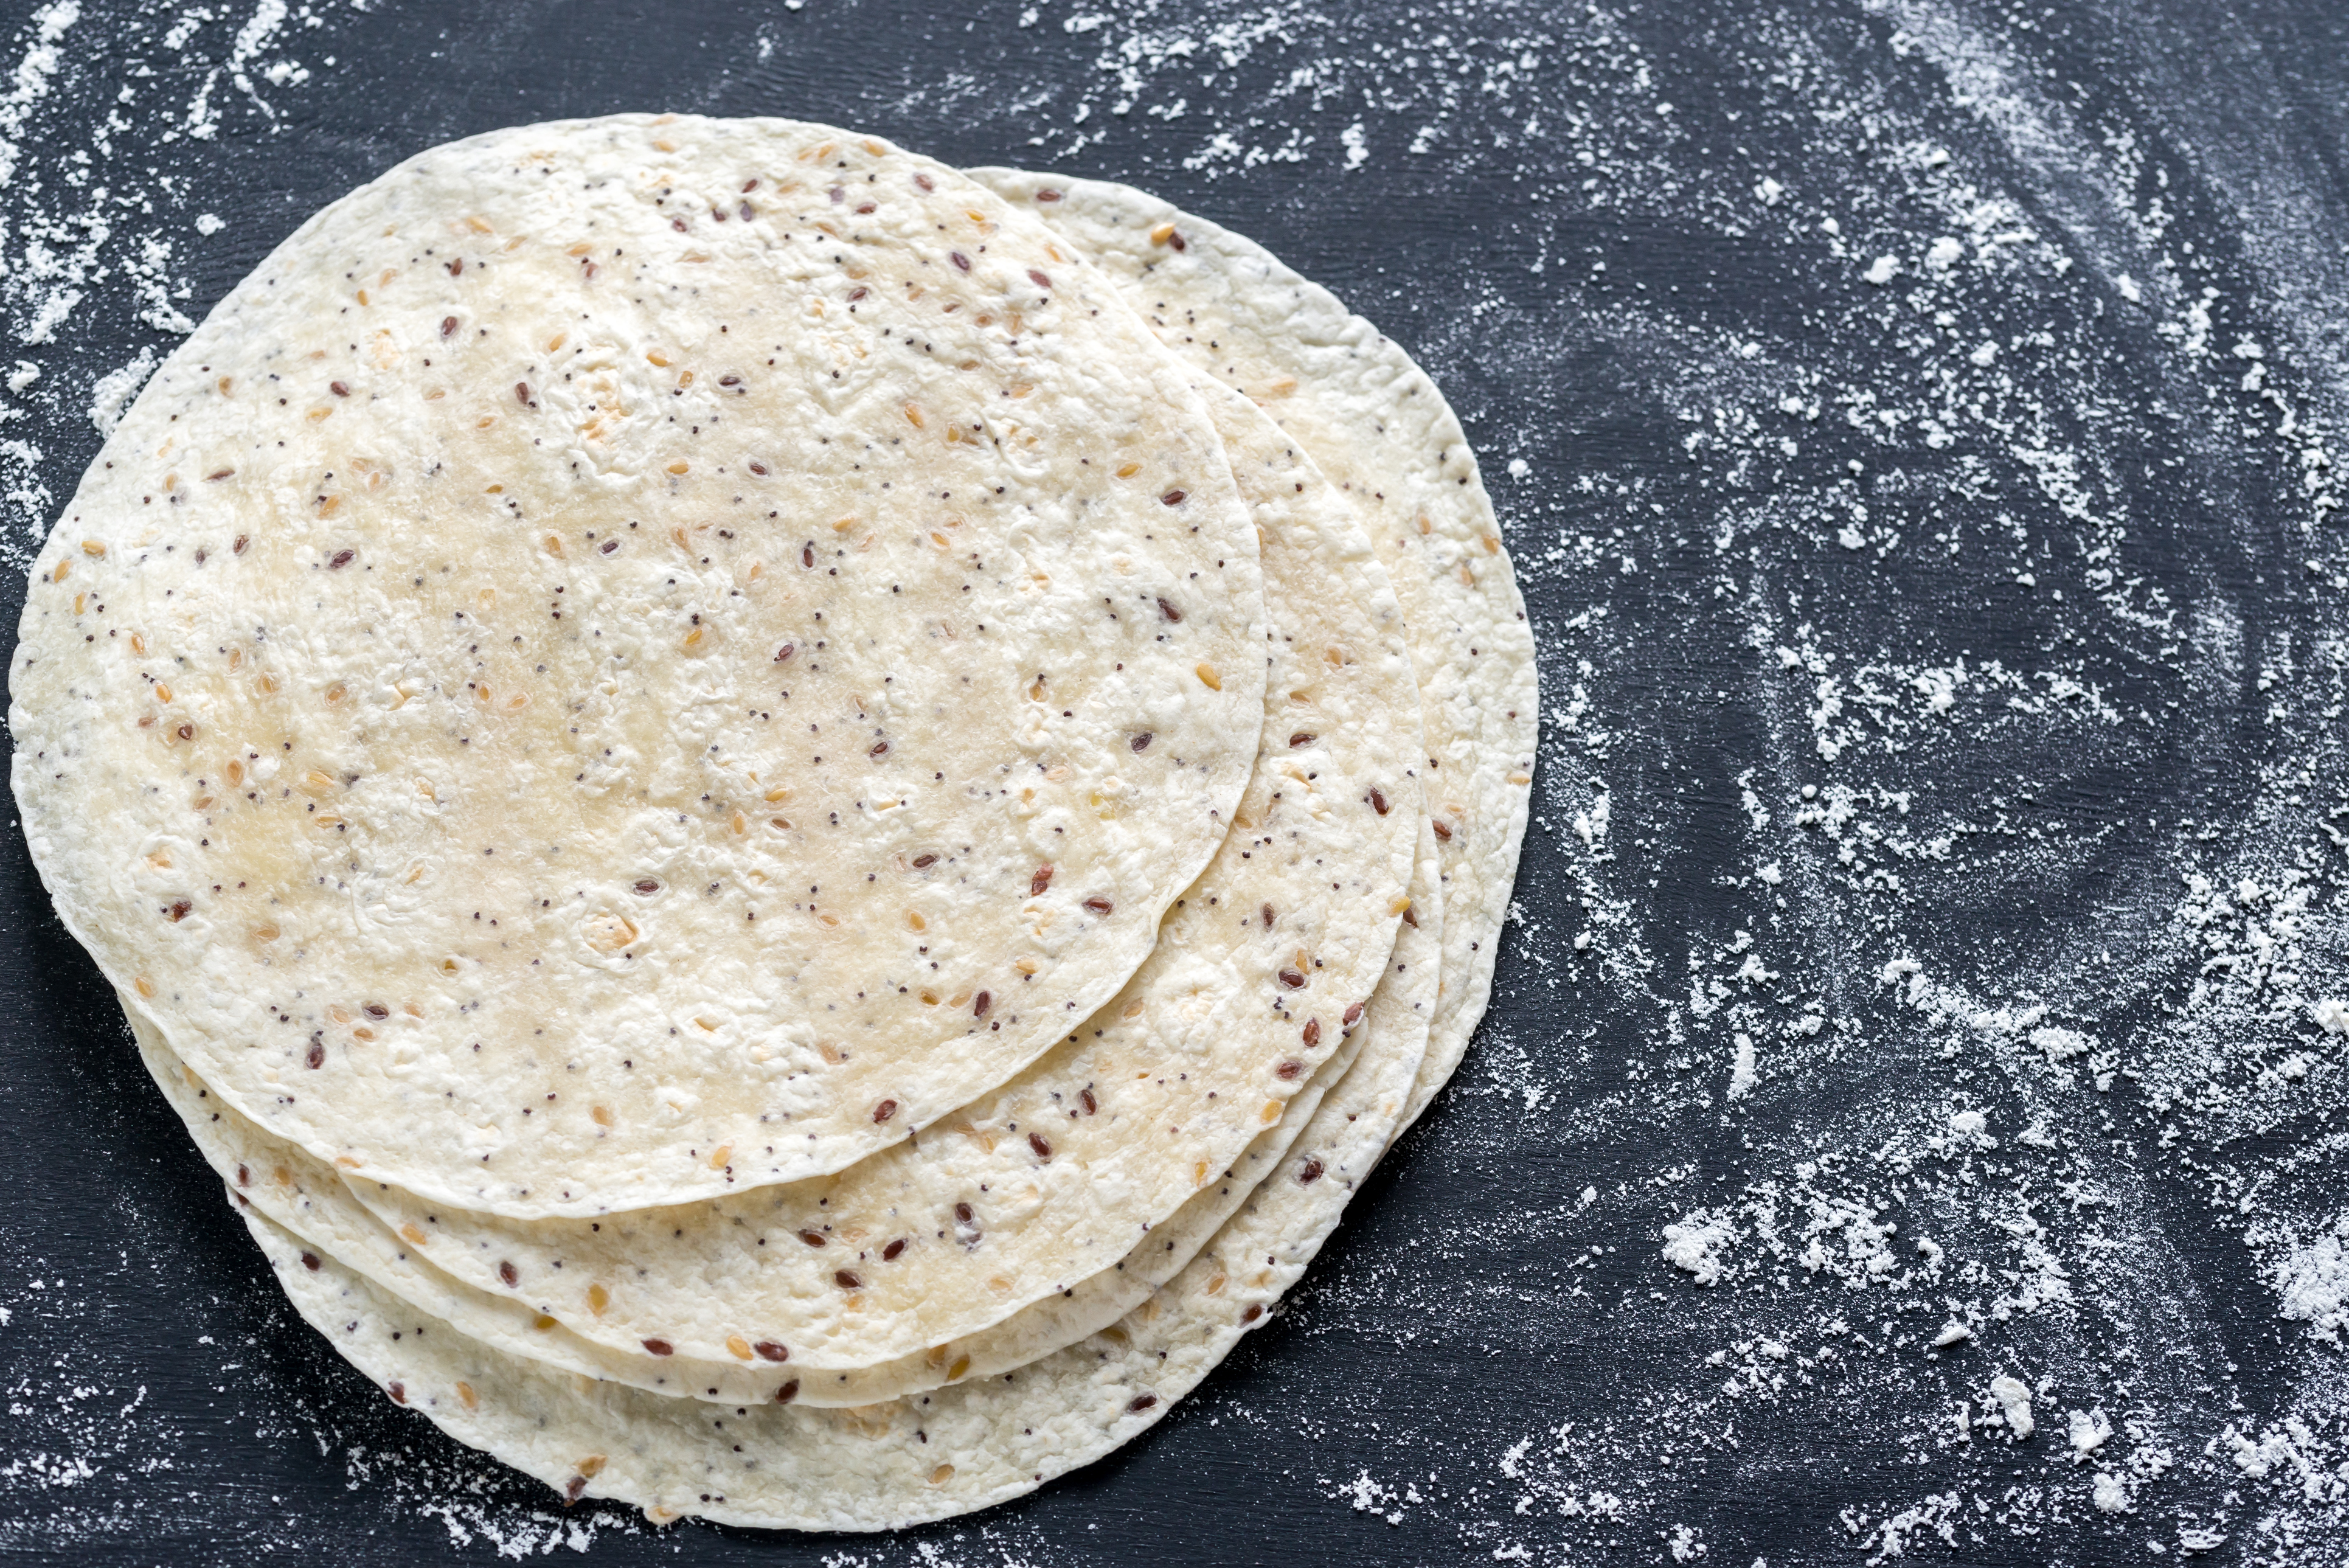 Stack of tortillas on a black surface